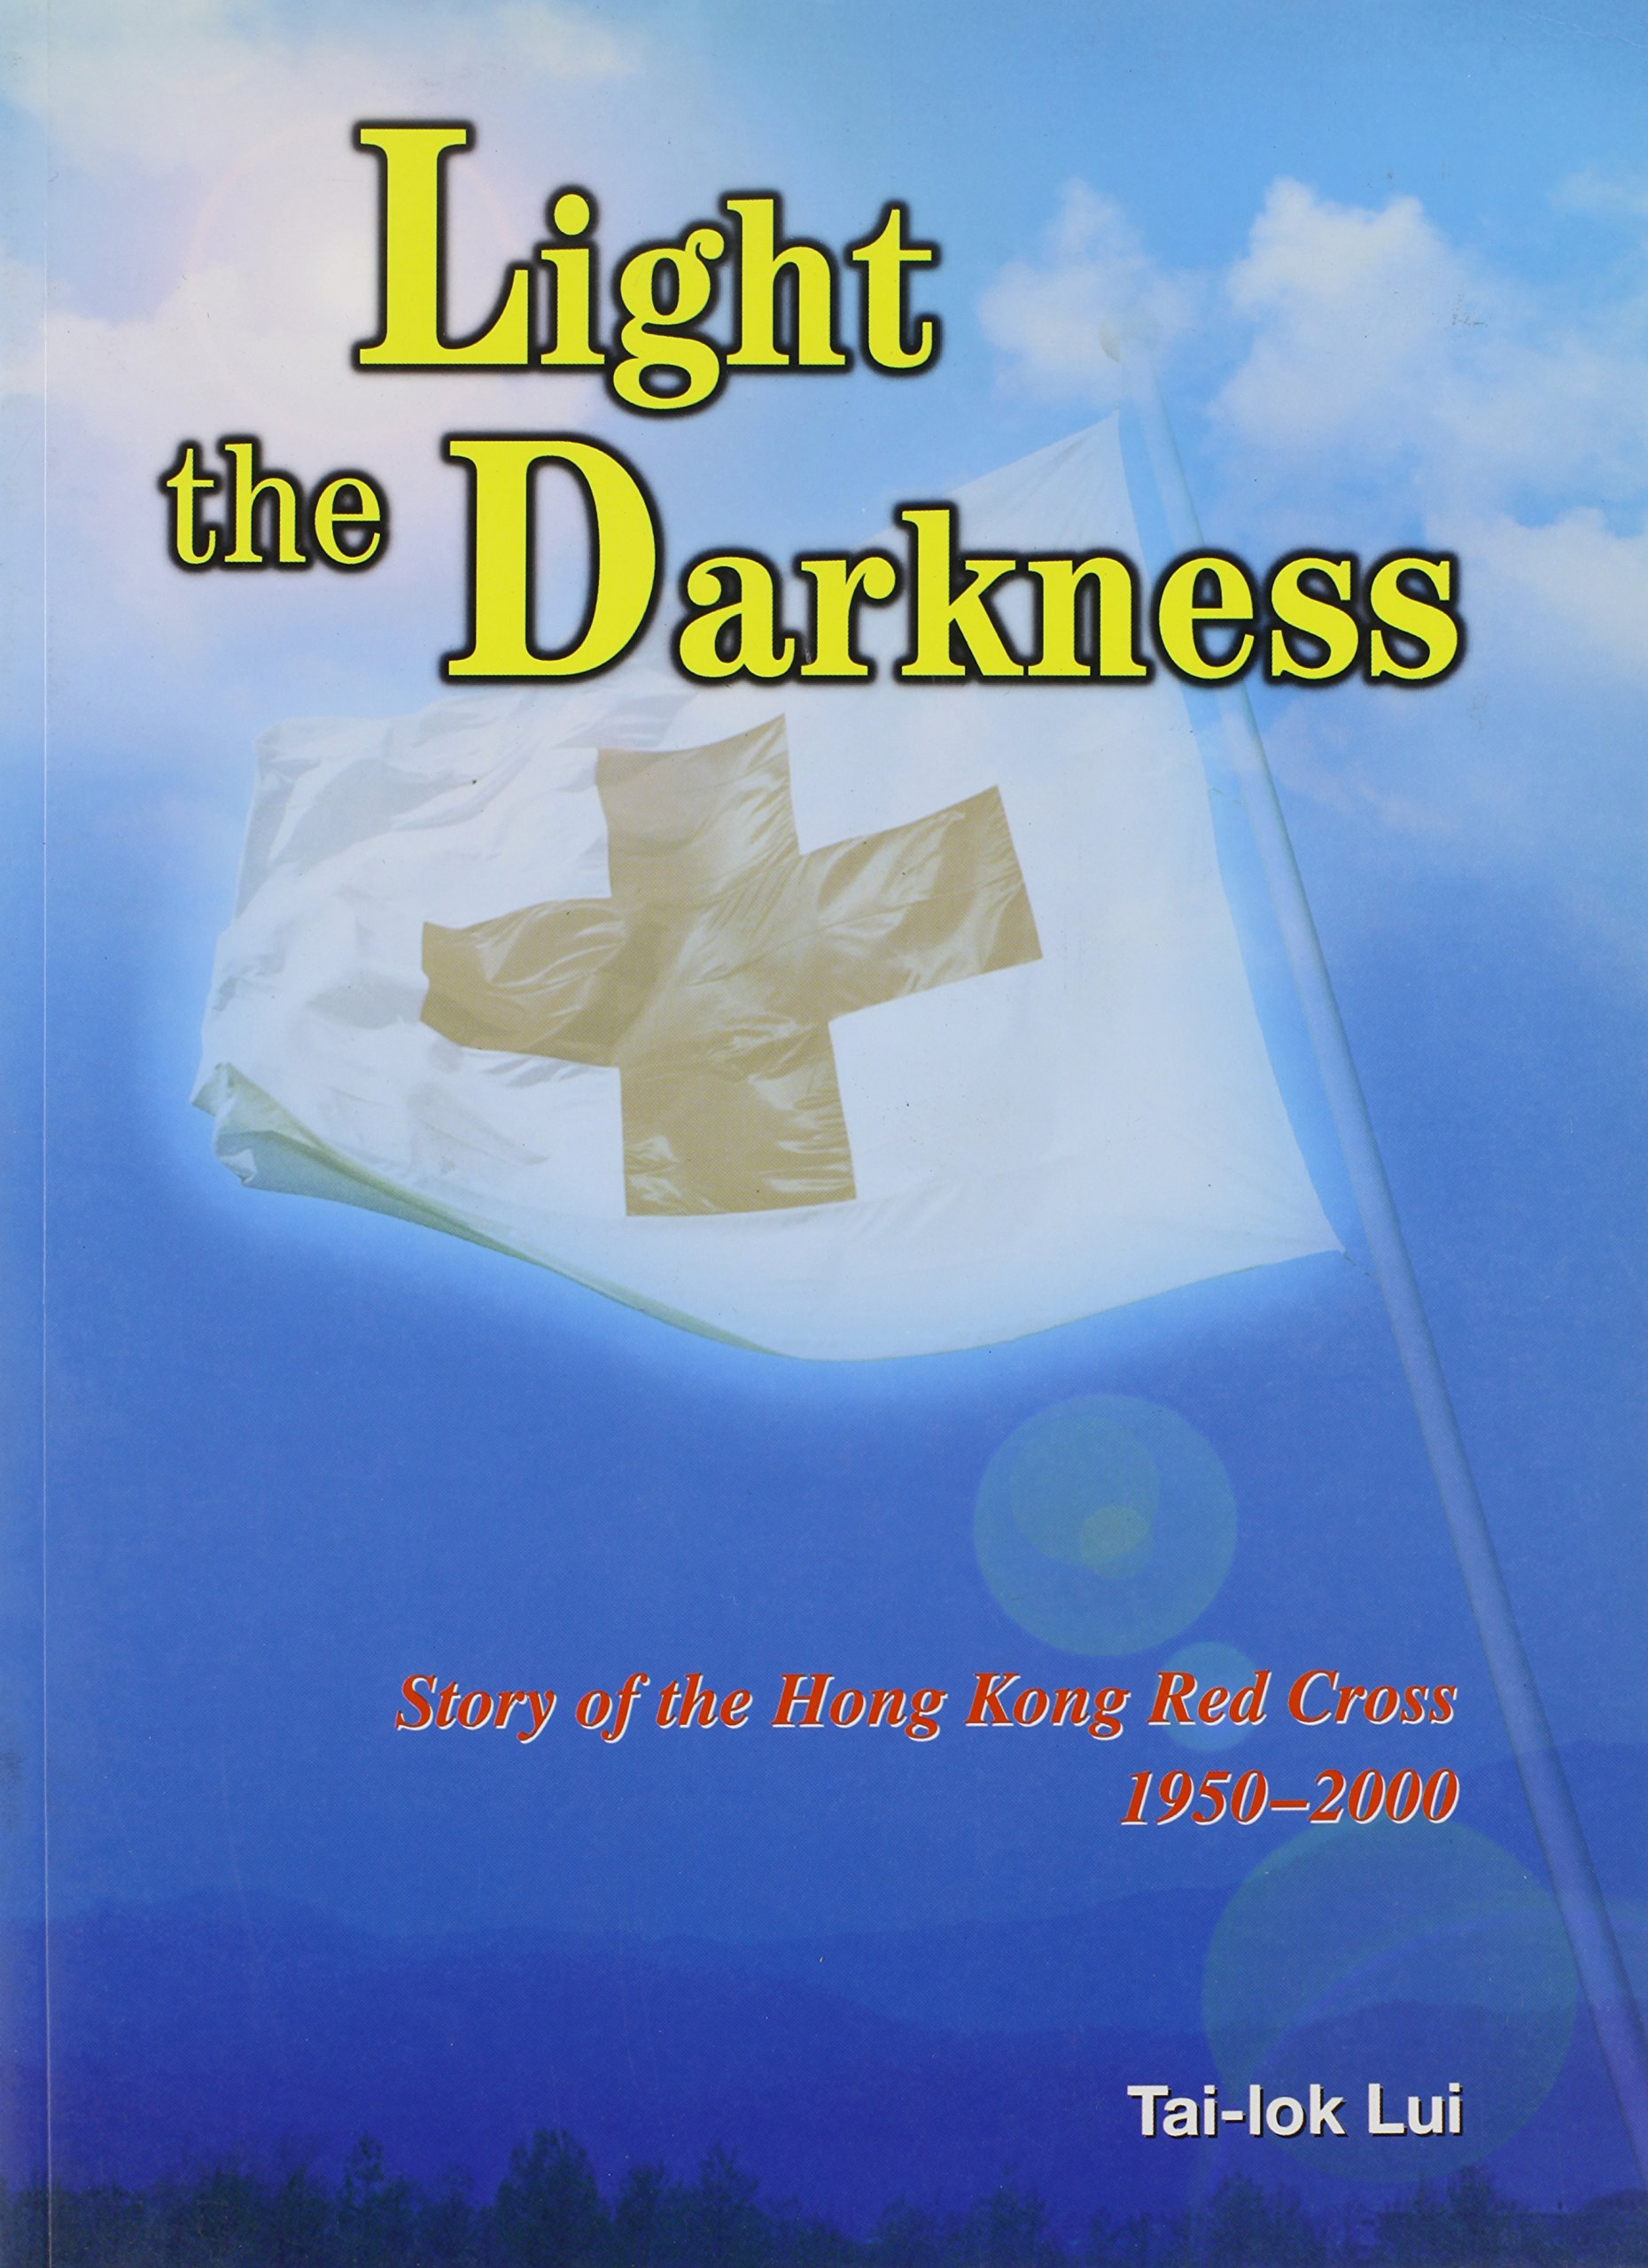 Light the Darkness: Story of the Hong Kong Red Cross, 1950-2000